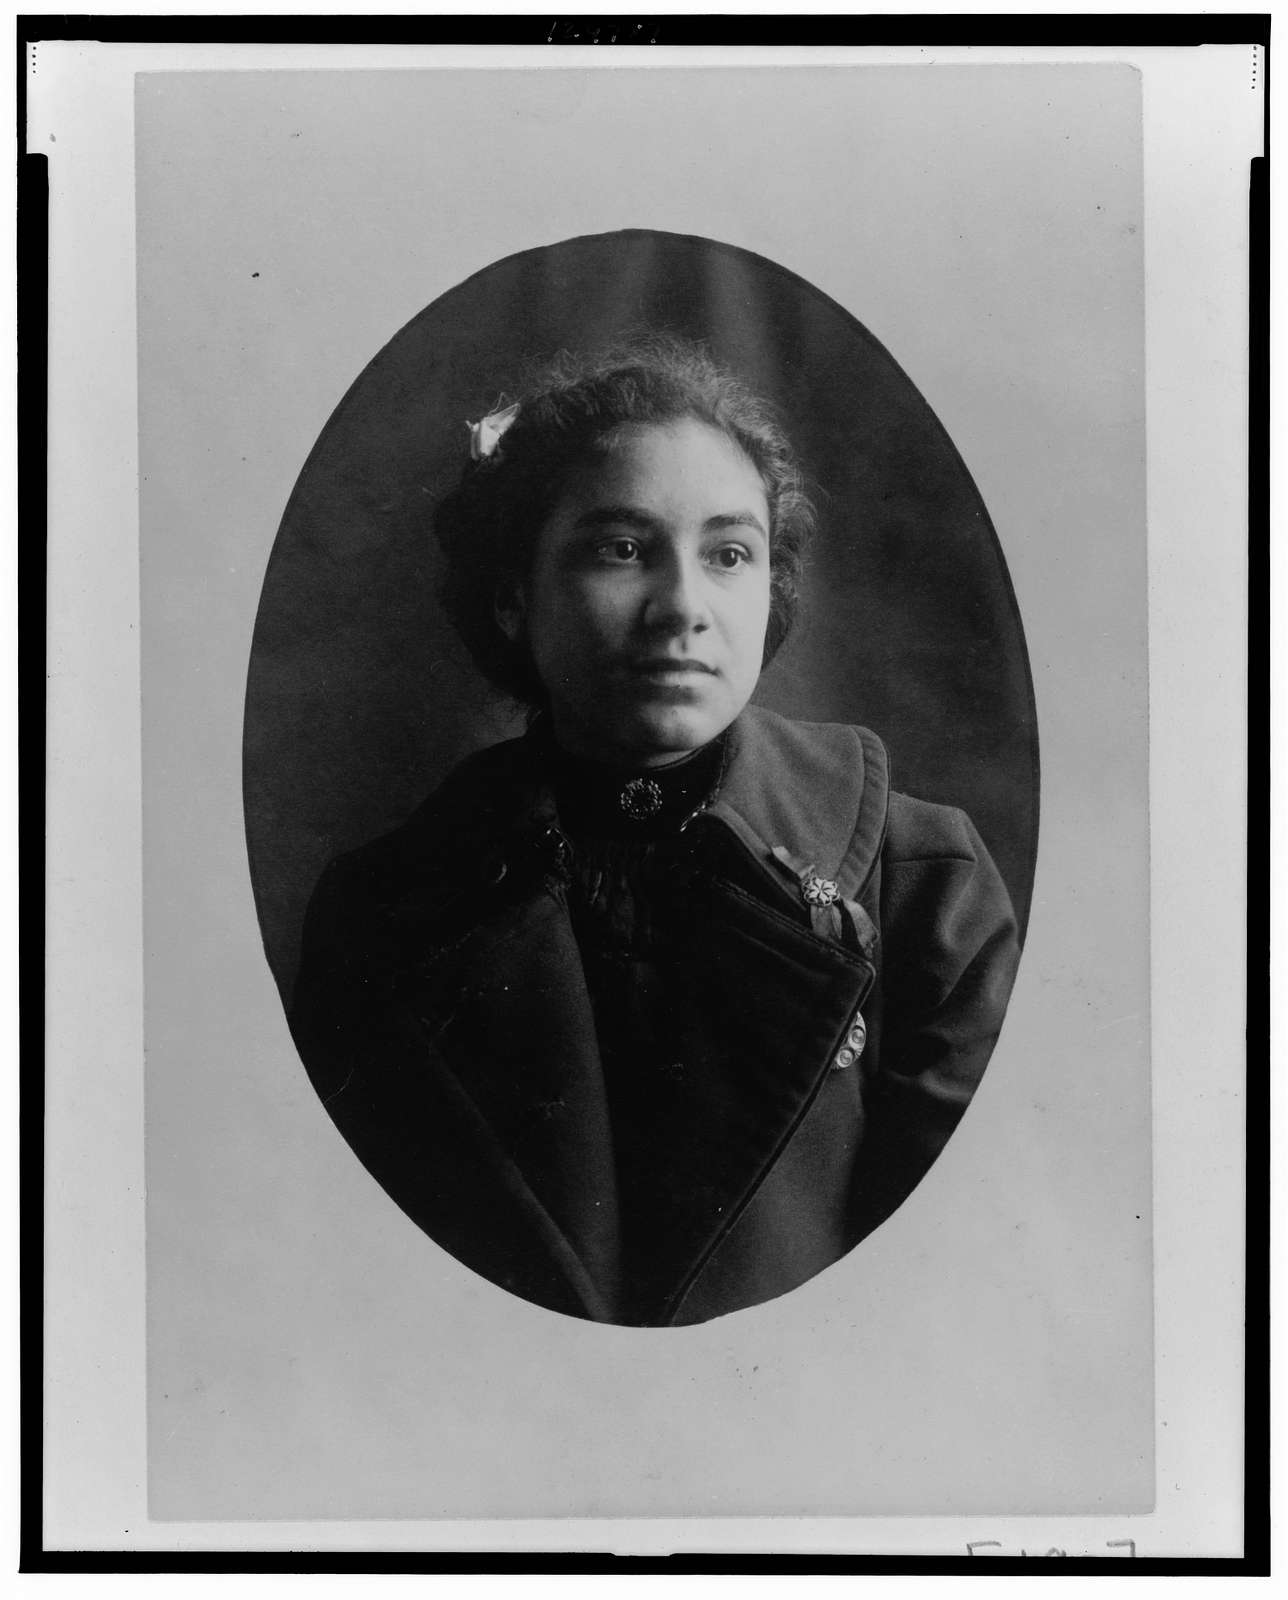 [African American woman, head-and-shoulders portrait, facing front, wearing coat]